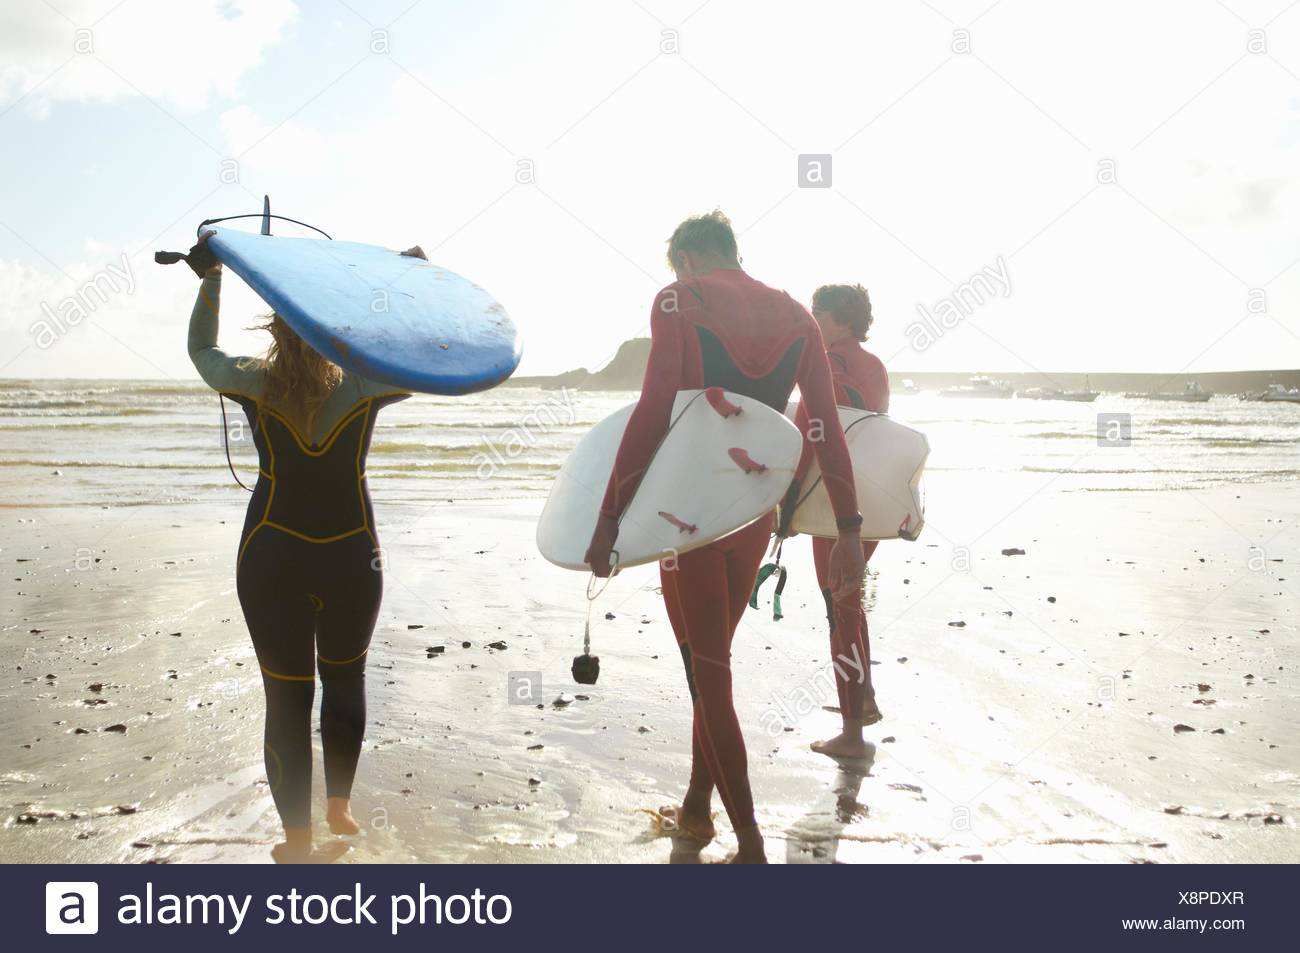 Group of surfers heading towards sea, carrying surfboards, rear view - Stock Image